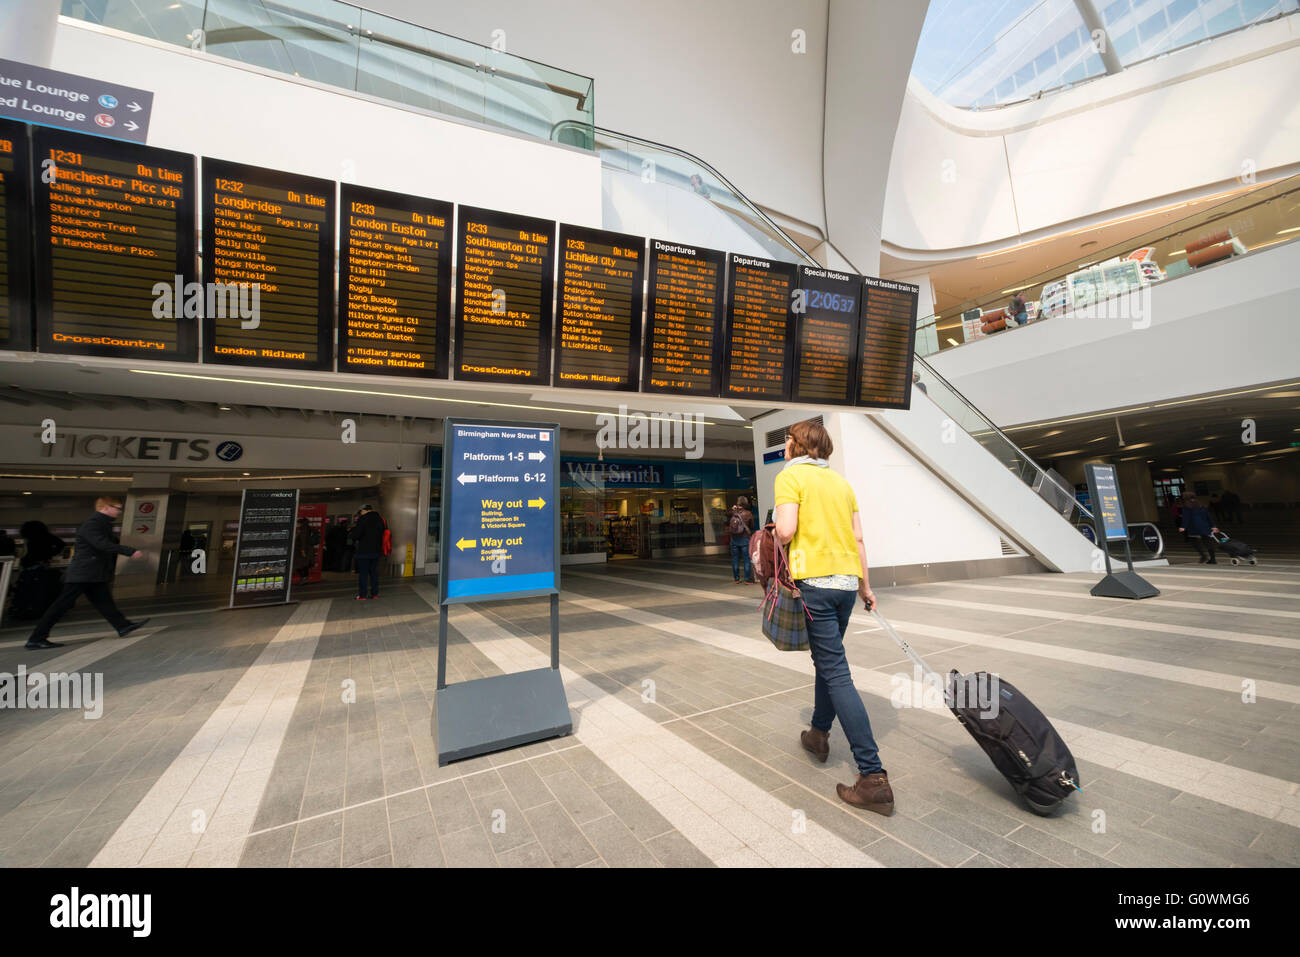 La gare de New Street, Birmingham, UK. Photo Stock